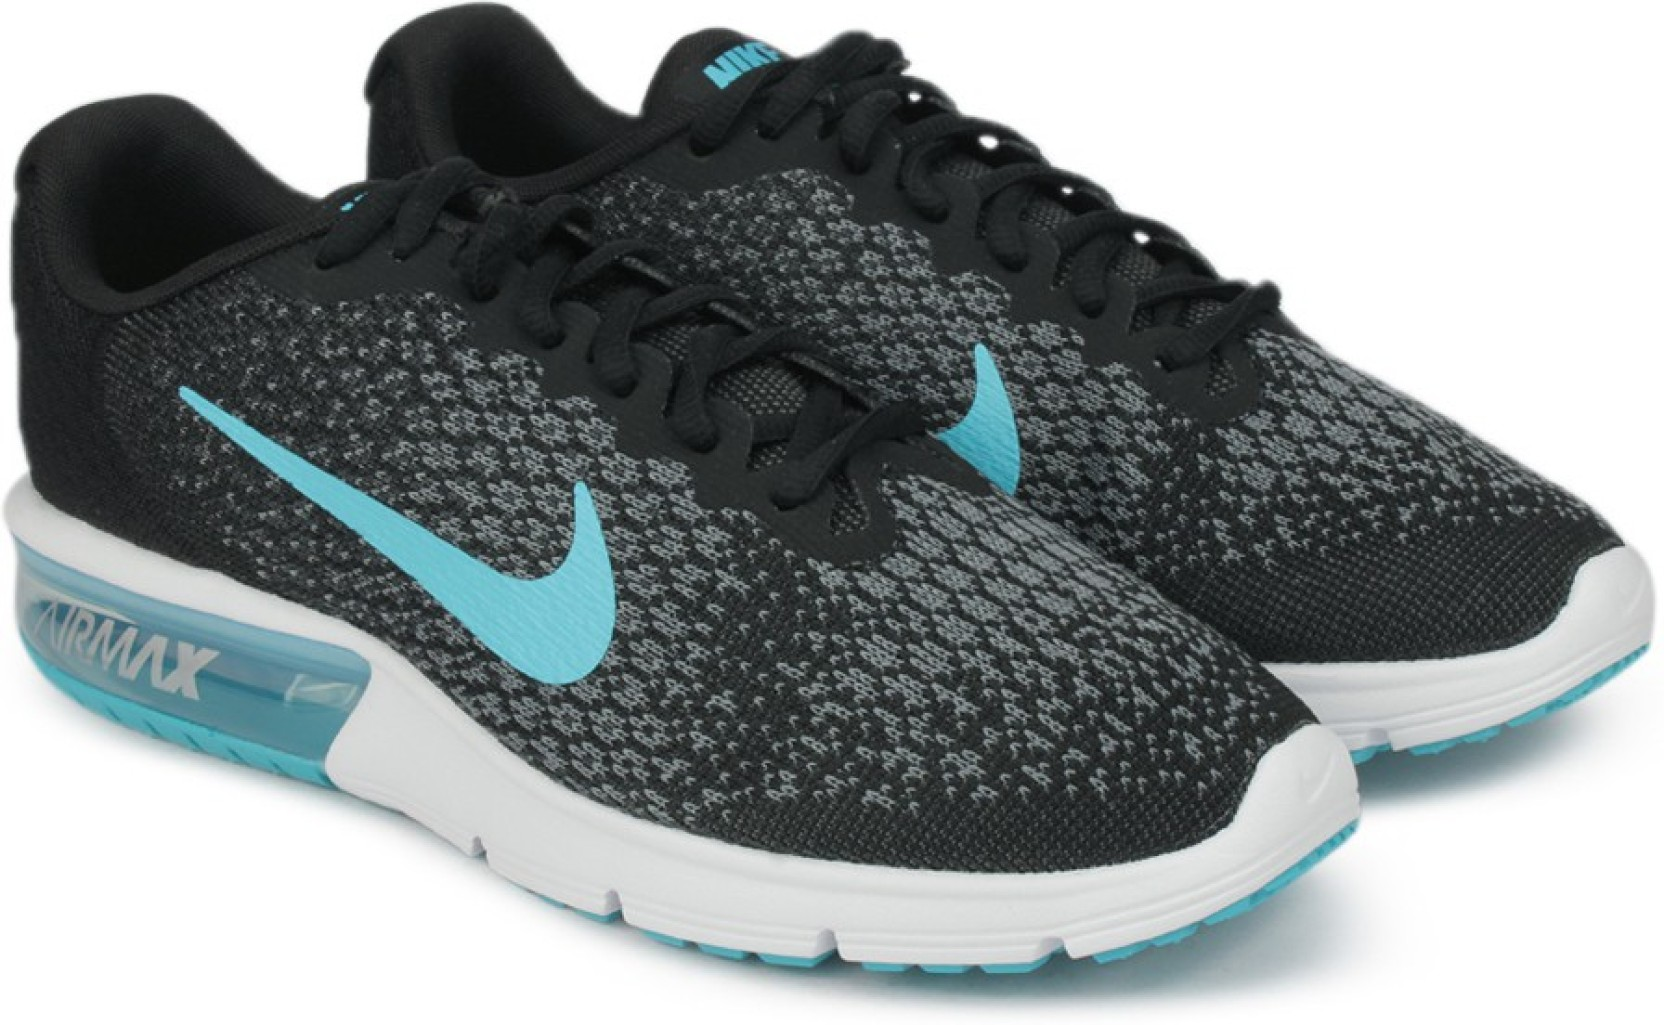 182d51f68ed Nike AIR MAX SEQUENT 2 Running Shoes For Men - Buy BLACK CHLORINE ...